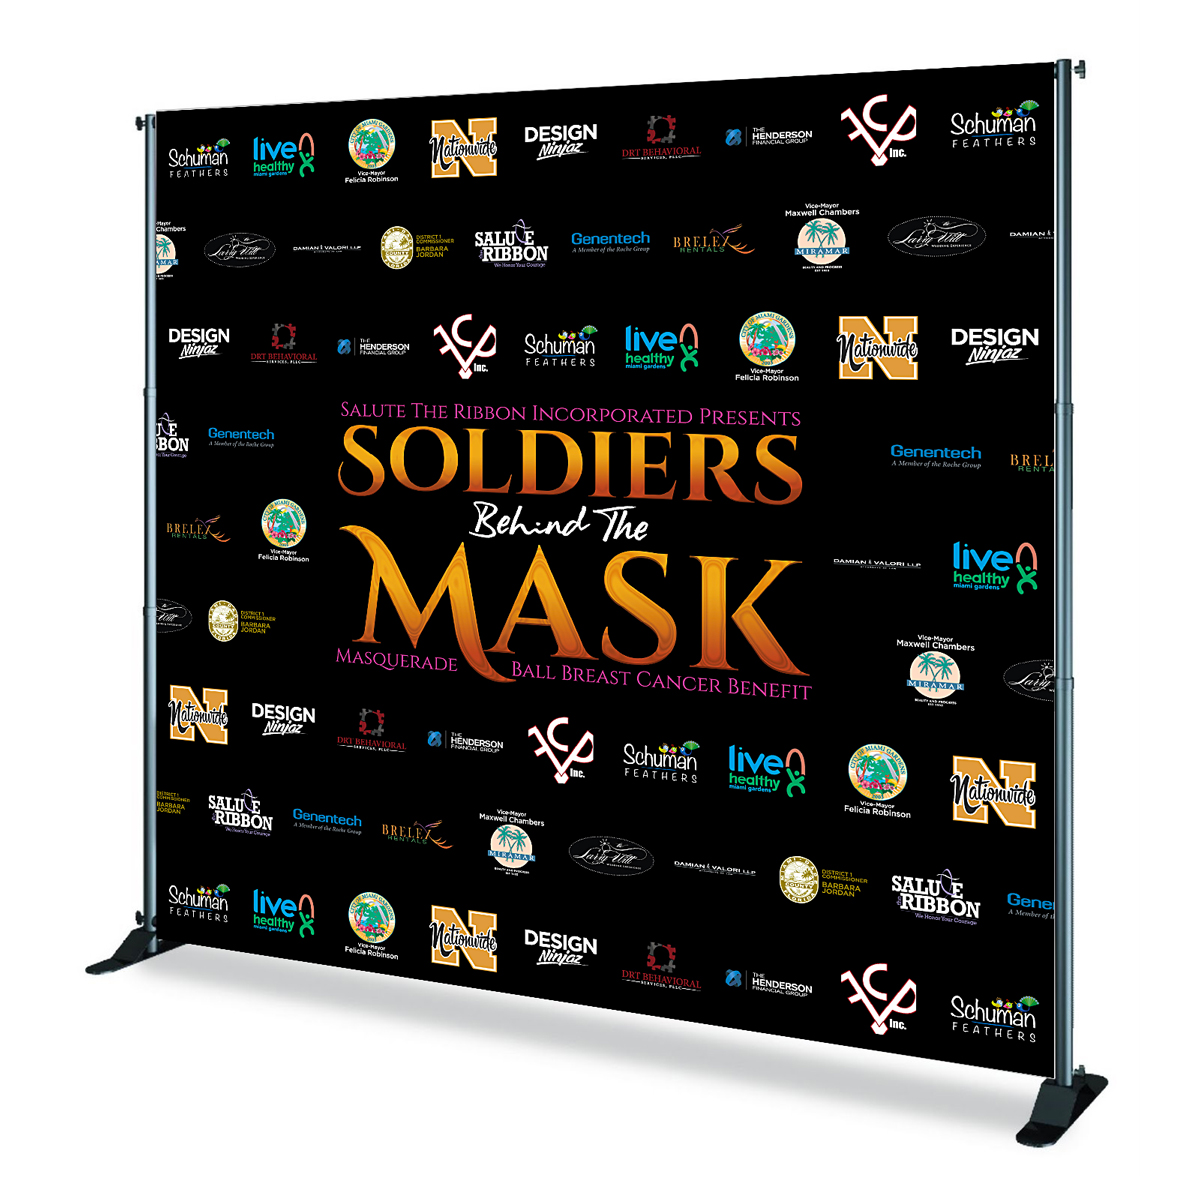 Soldiers Behind The Mask Backdrop Design & Print Event Branding & Collateral